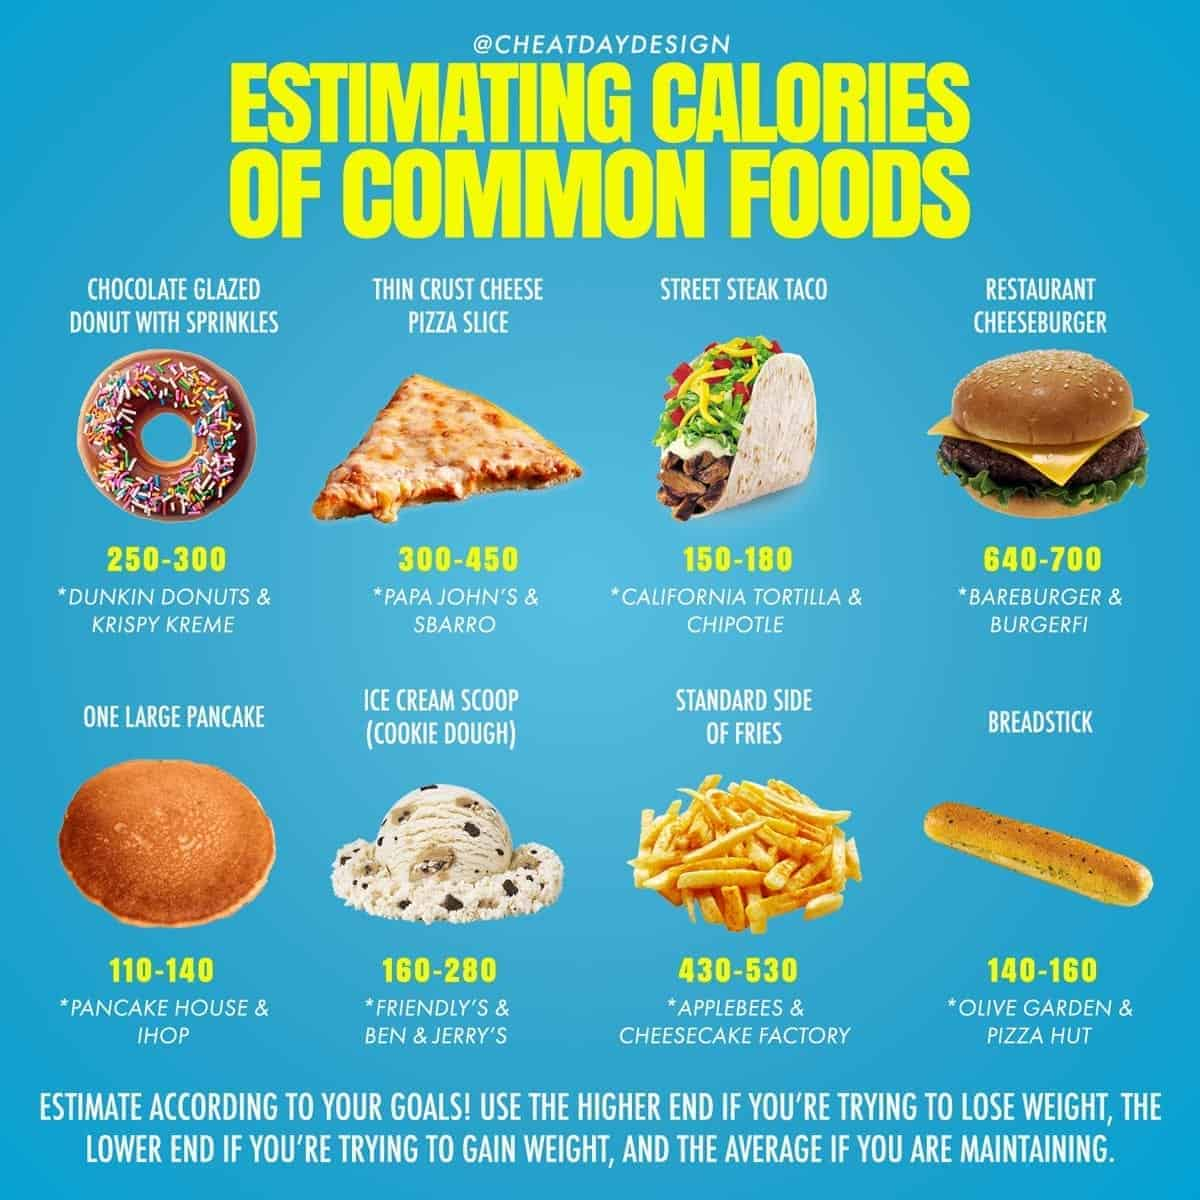 How to estimate calories of common foods we eat